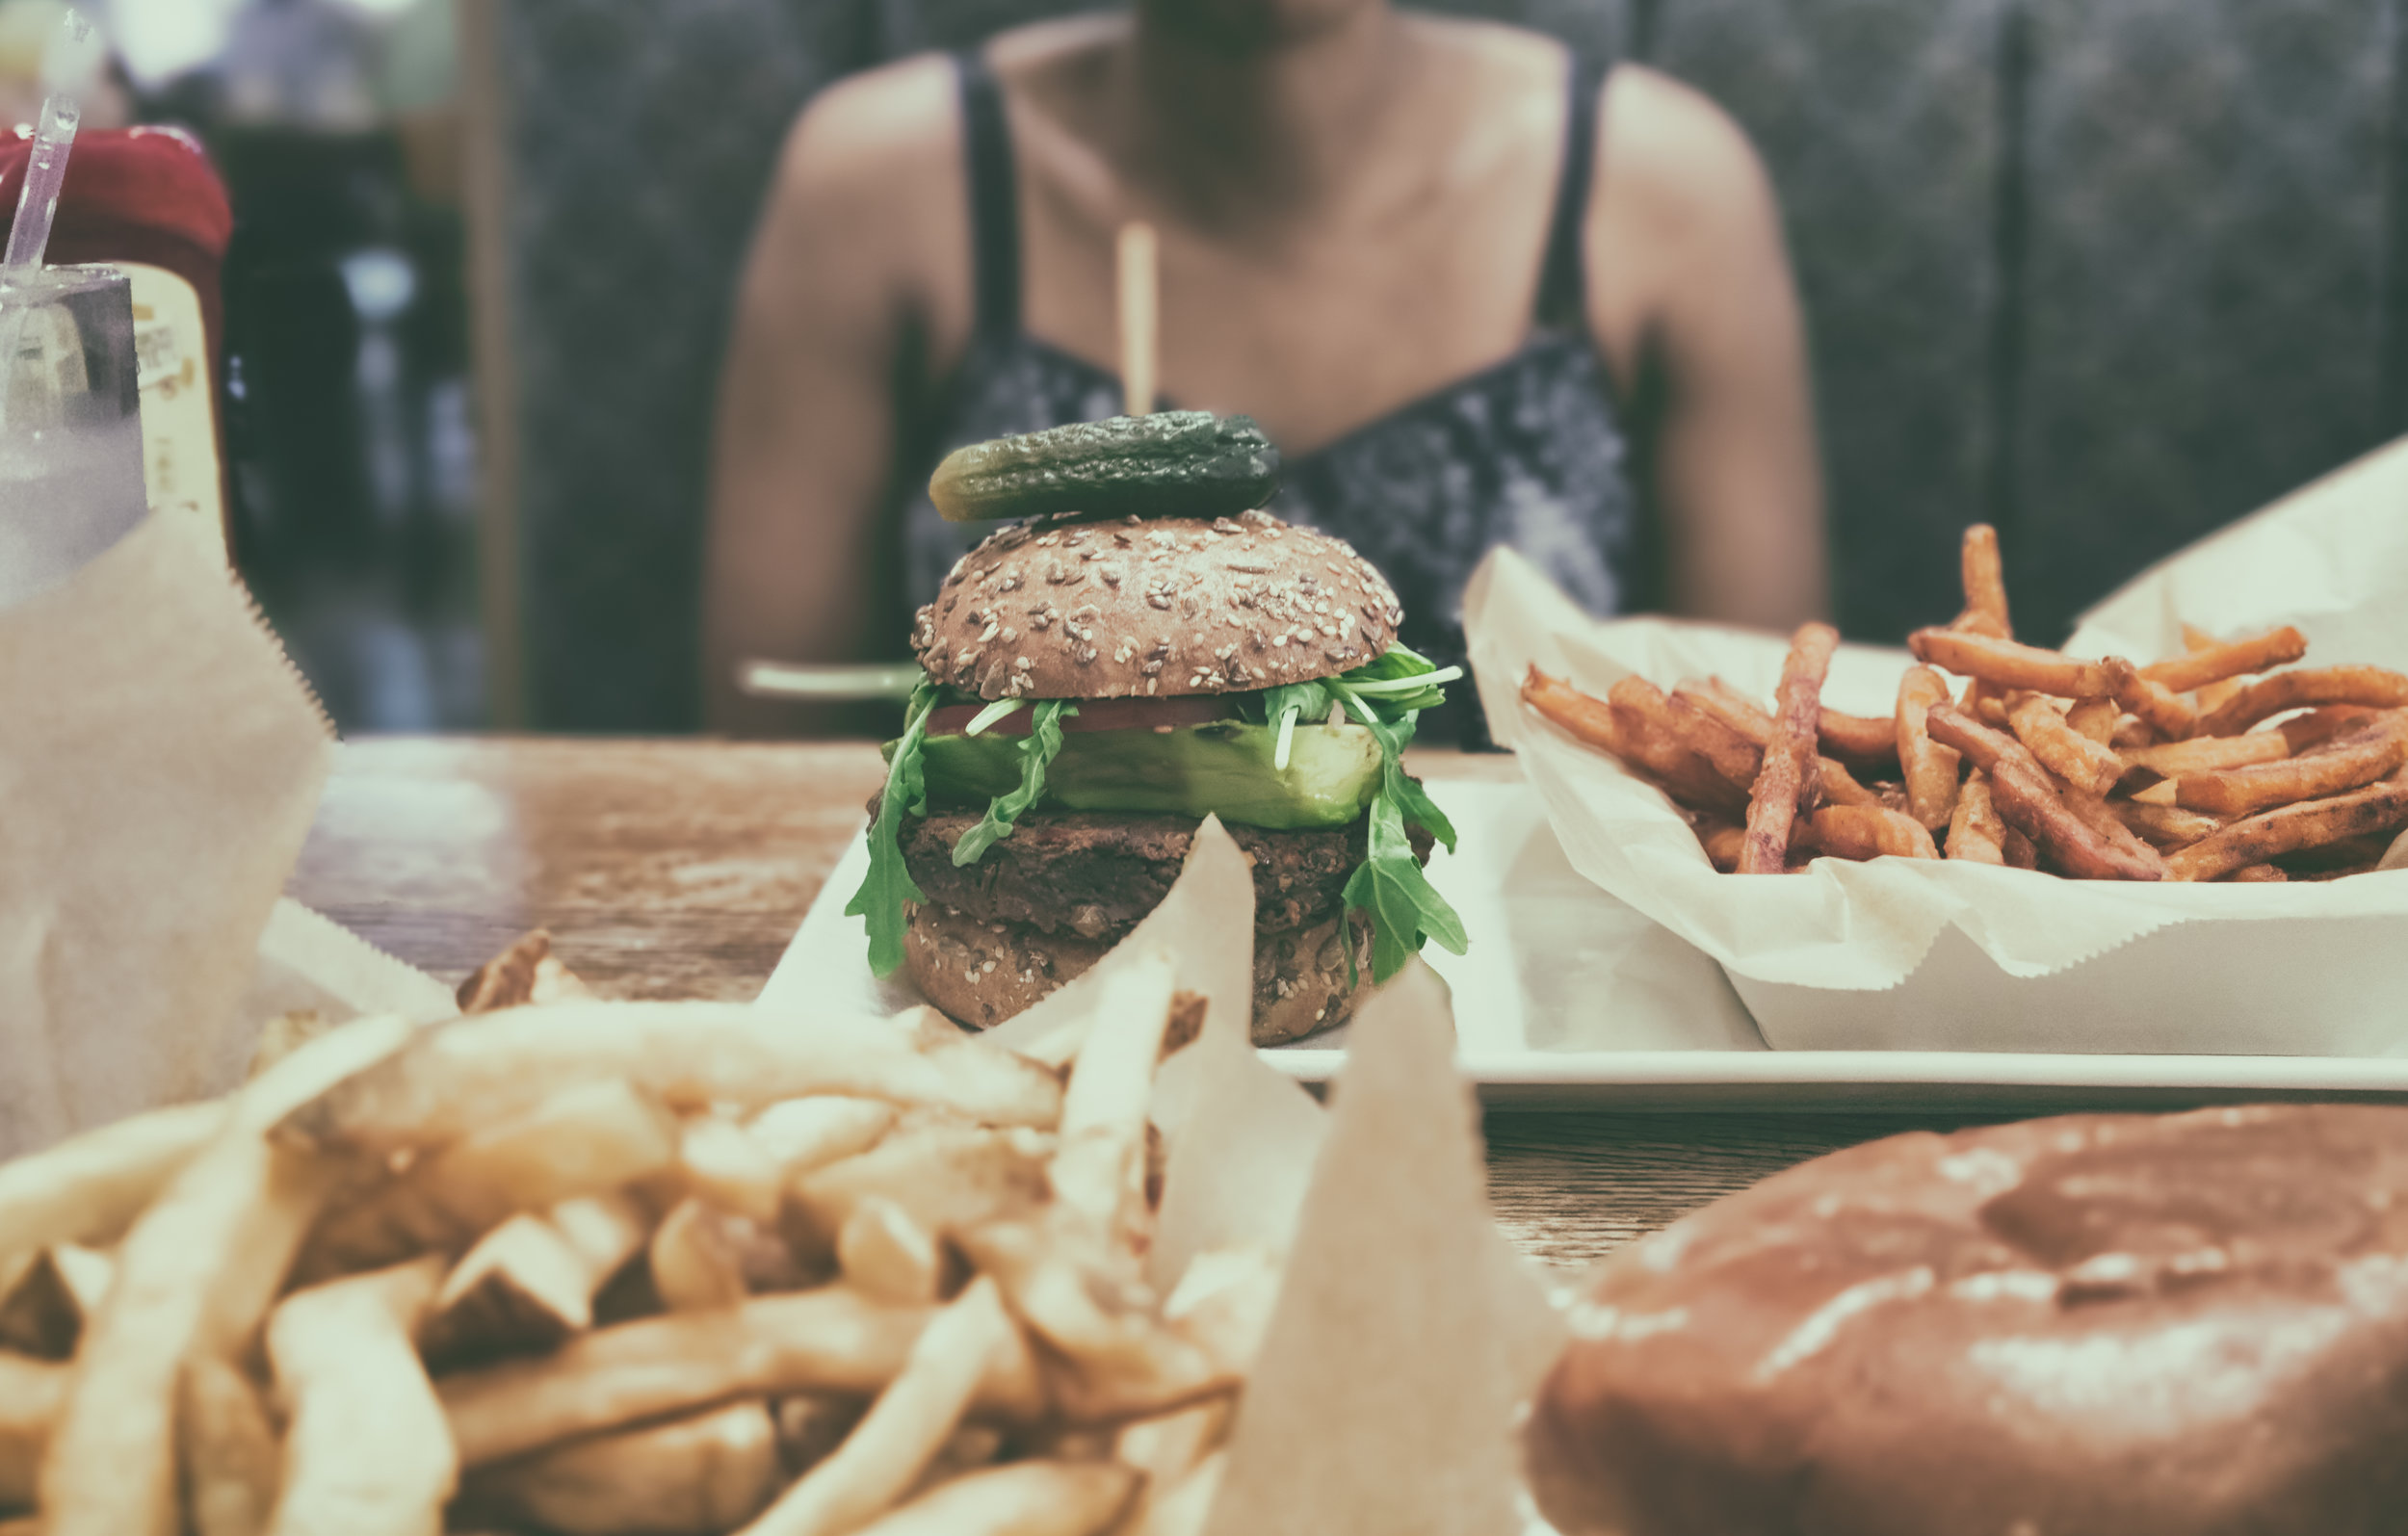 fewer cravings - Dehydration can sometimes be confused with hunger, so drinking enough water may actually help reduce cravings (and assist in managing your weight). This means you're more likely to eat in support of your energy needs and make food choices that best support gut health which also improve intuitive eating healthy habits.